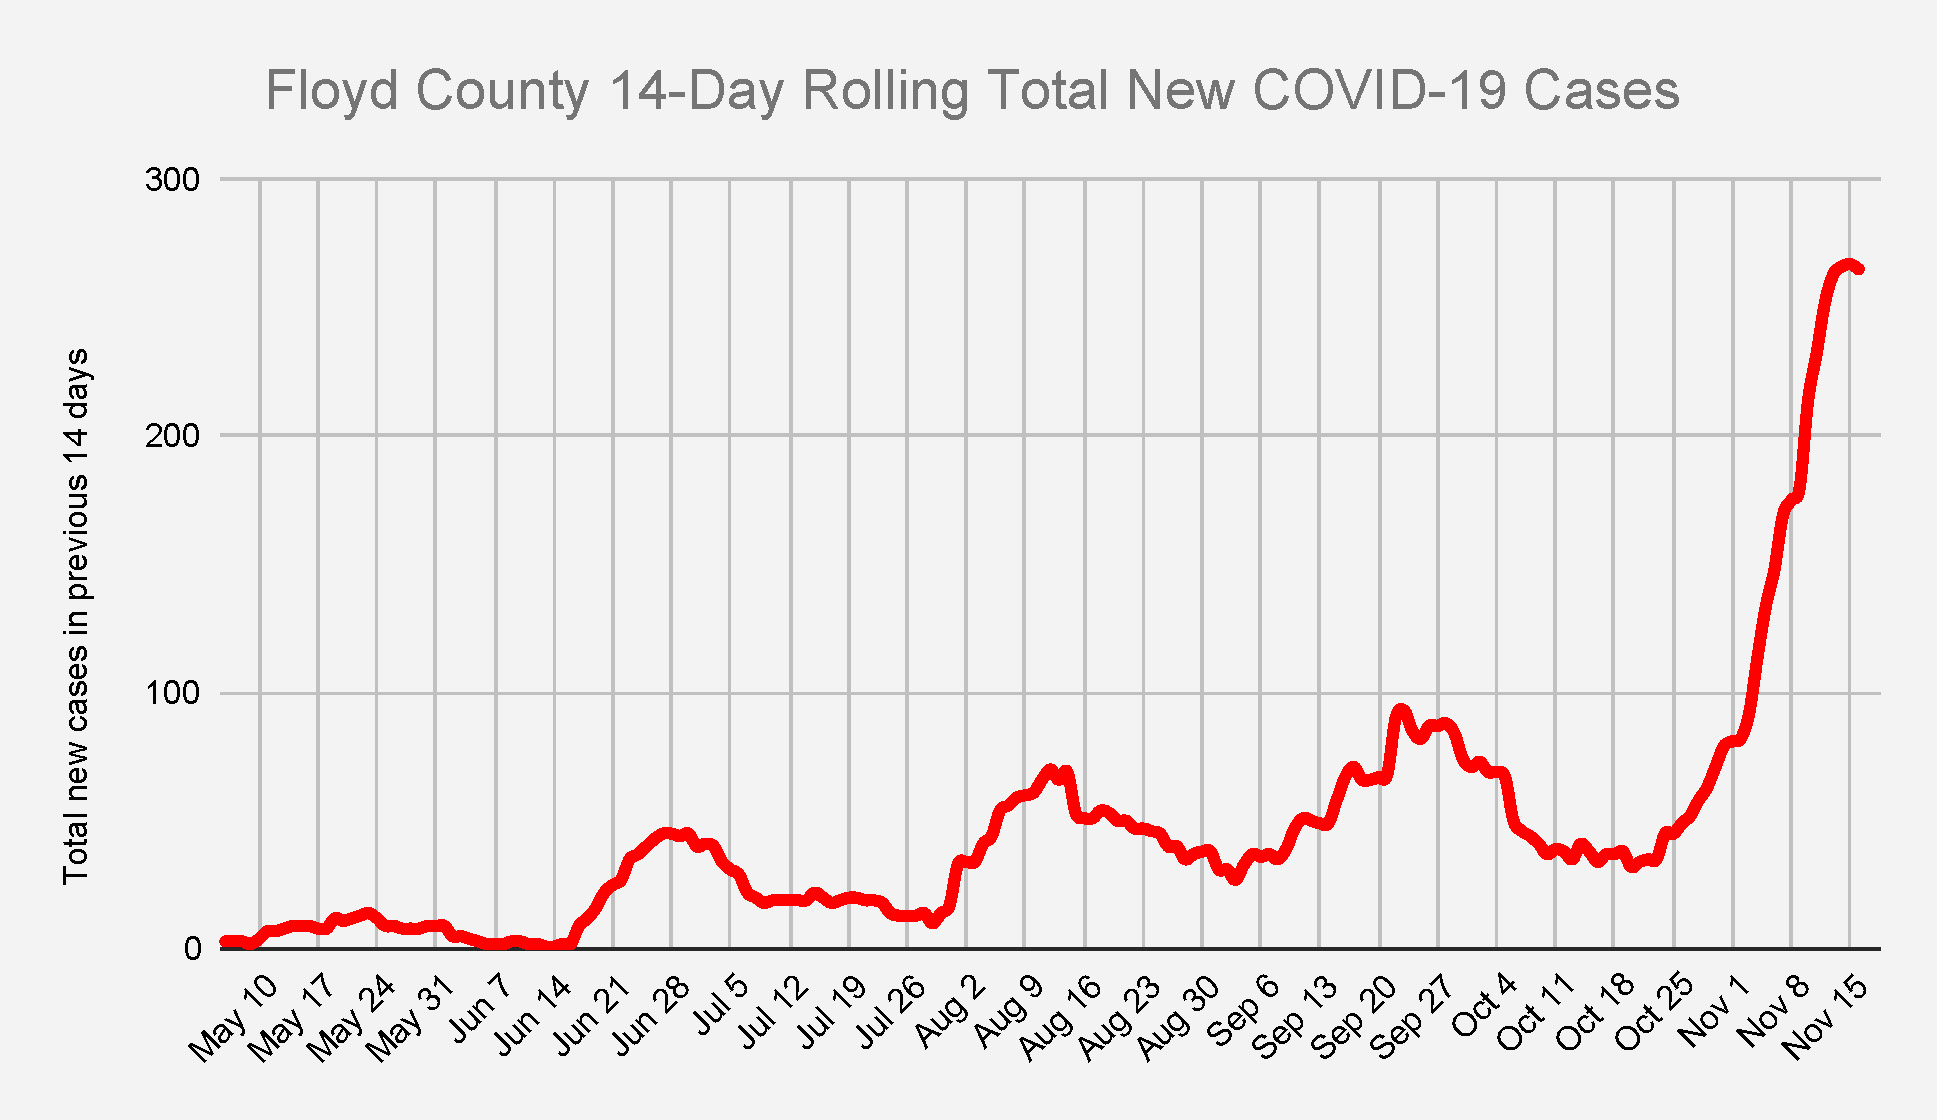 Floyd County COVID-19 cases continue to escalate